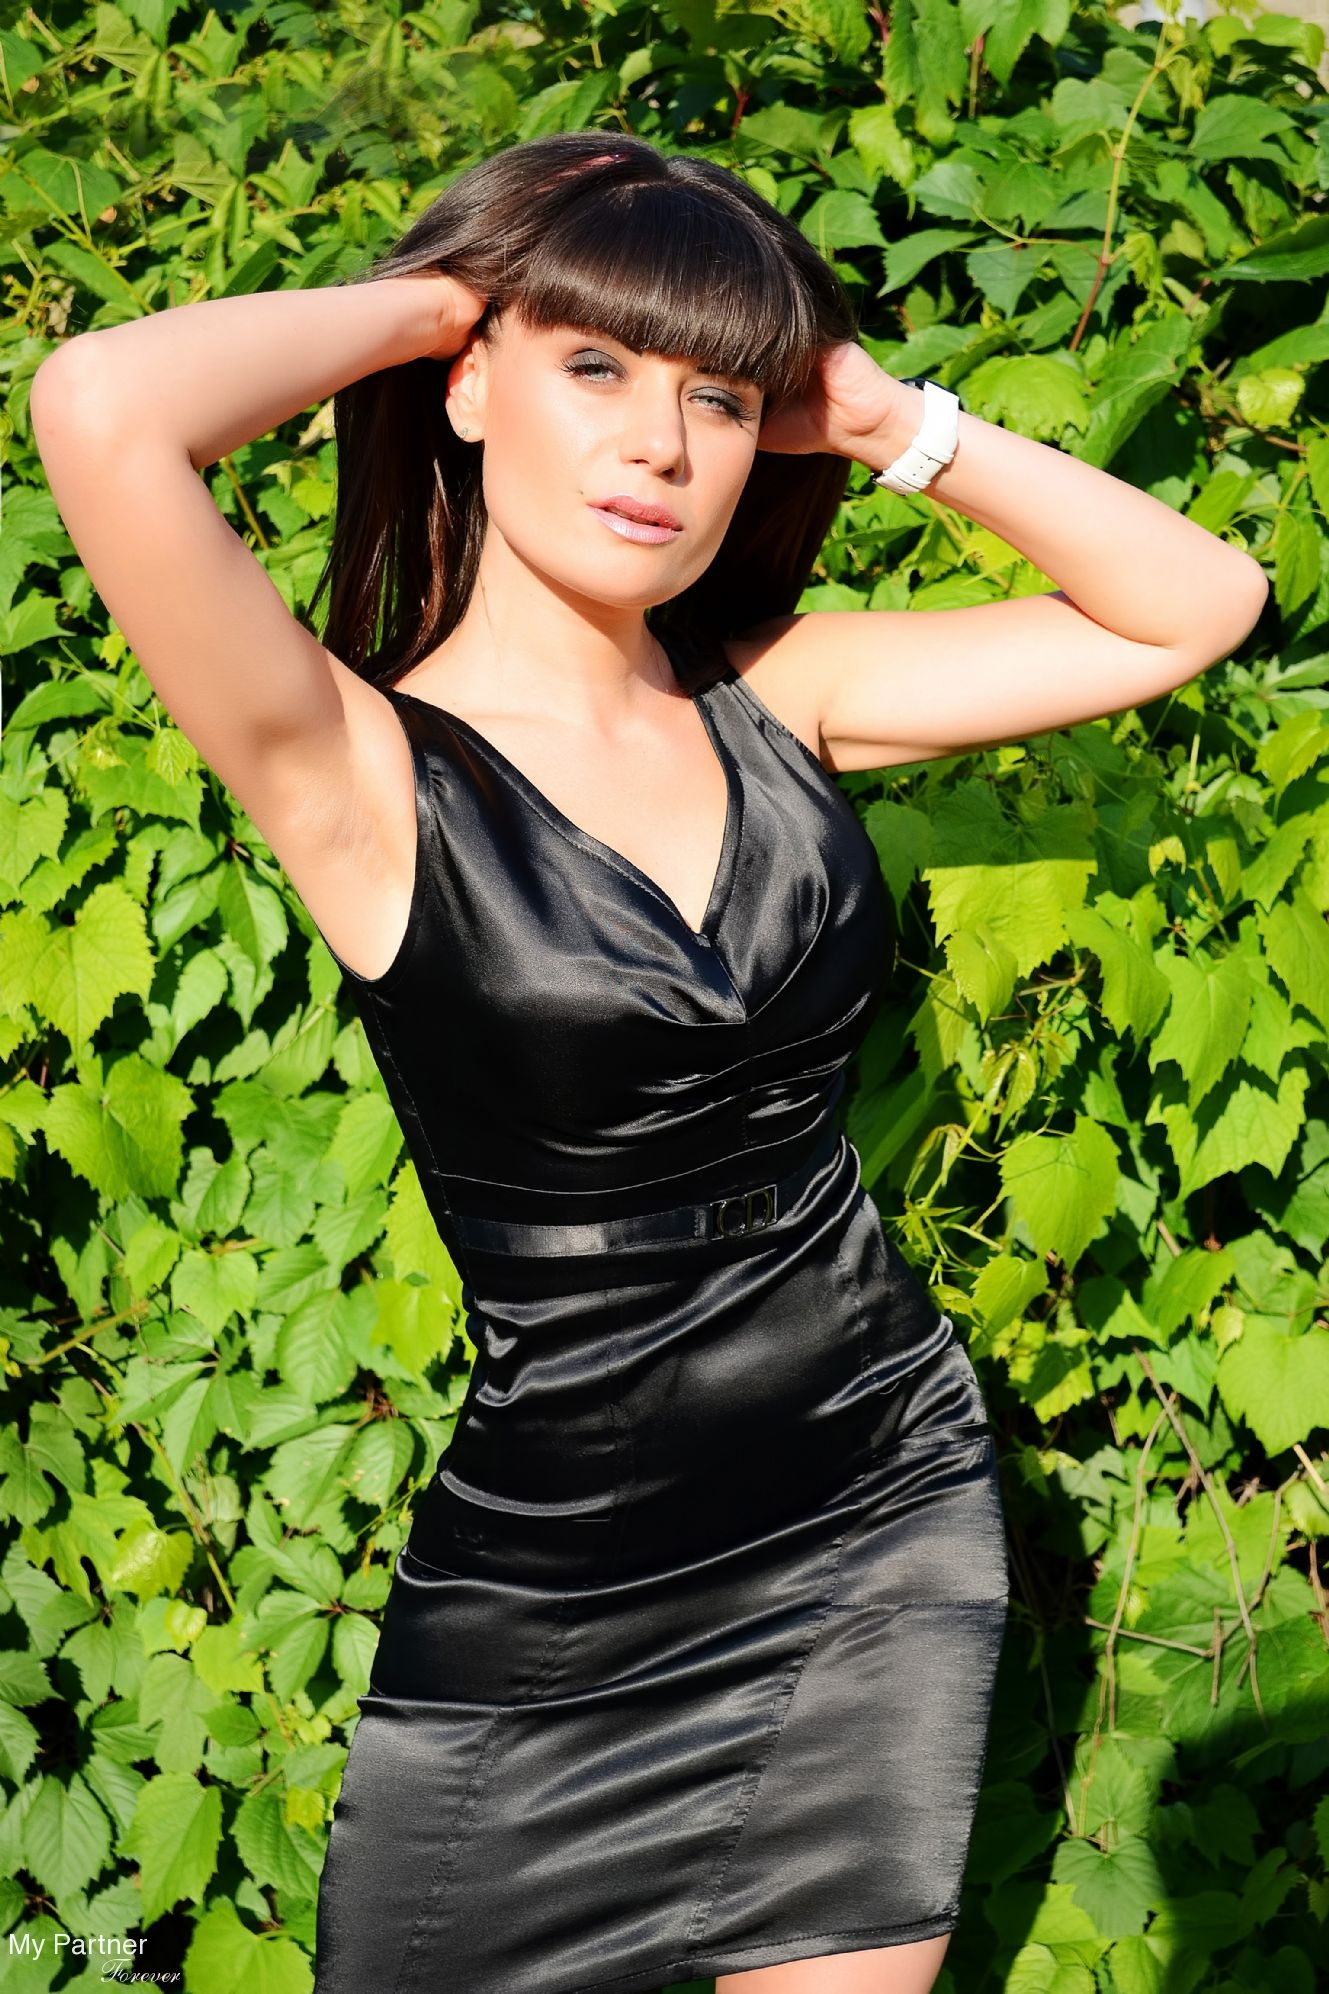 Online Dating with Gorgeous Ukrainian Woman Nataliya from Kharkov, Ukraine